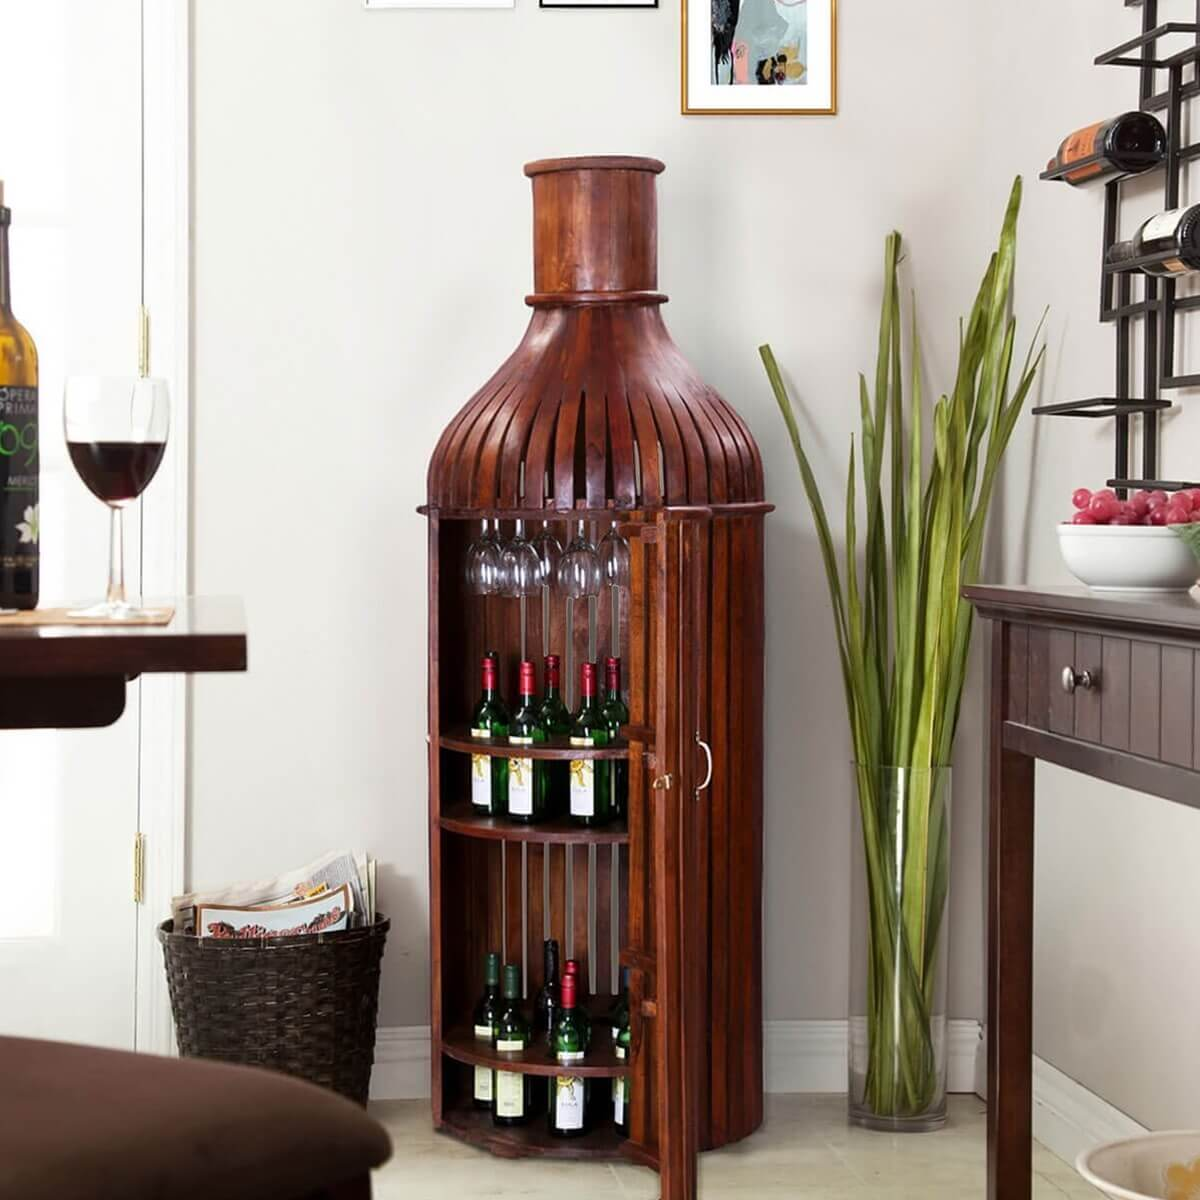 Bordeaux handcrafted solid wood wine bottle storage bar cabinet - Wine rack shaped like wine bottle ...